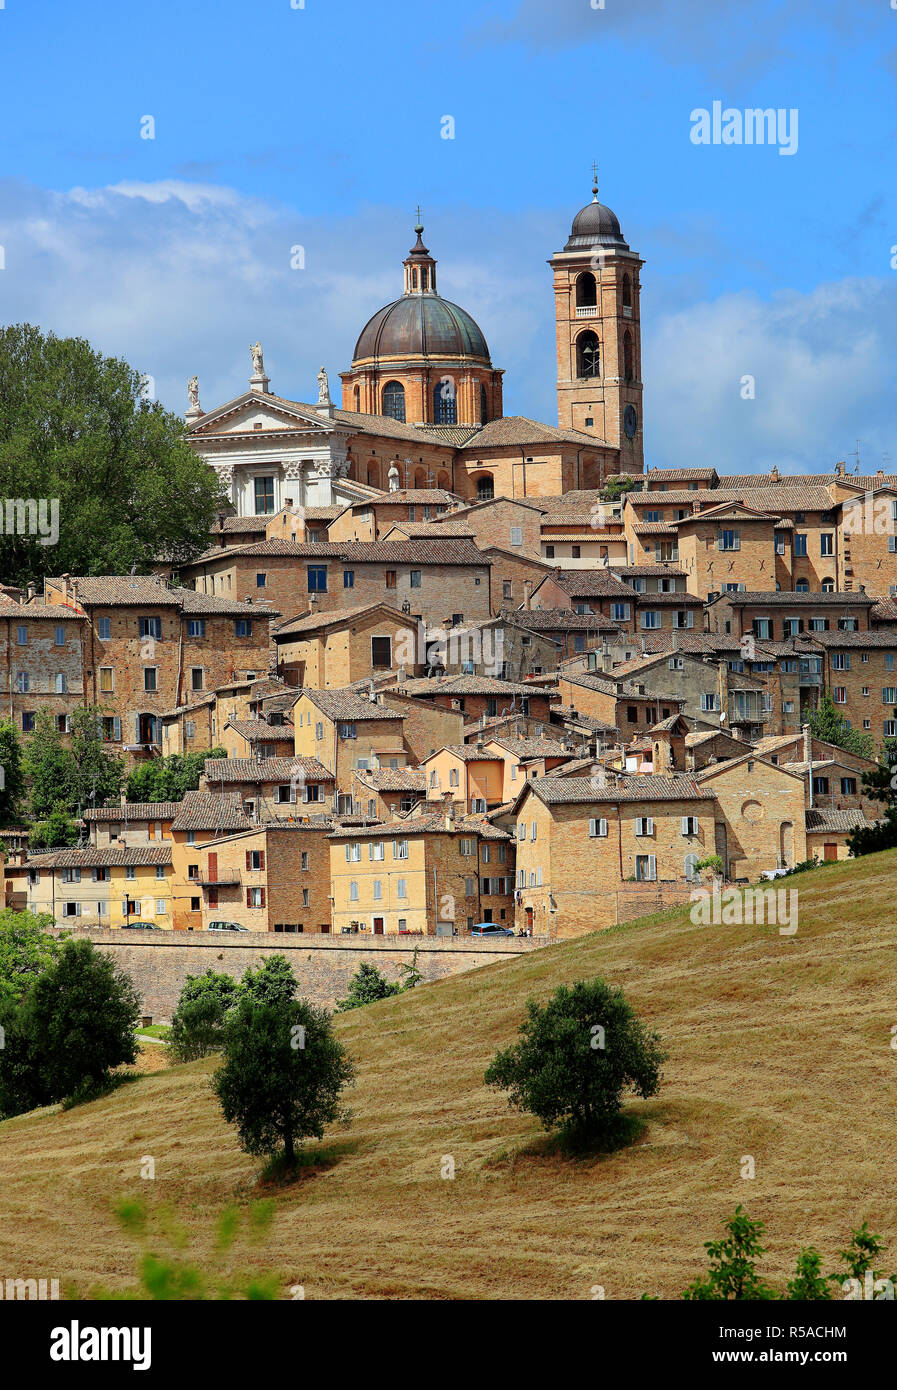 Cathedral and old town of Urbino, Marches region, Italy - Stock Image